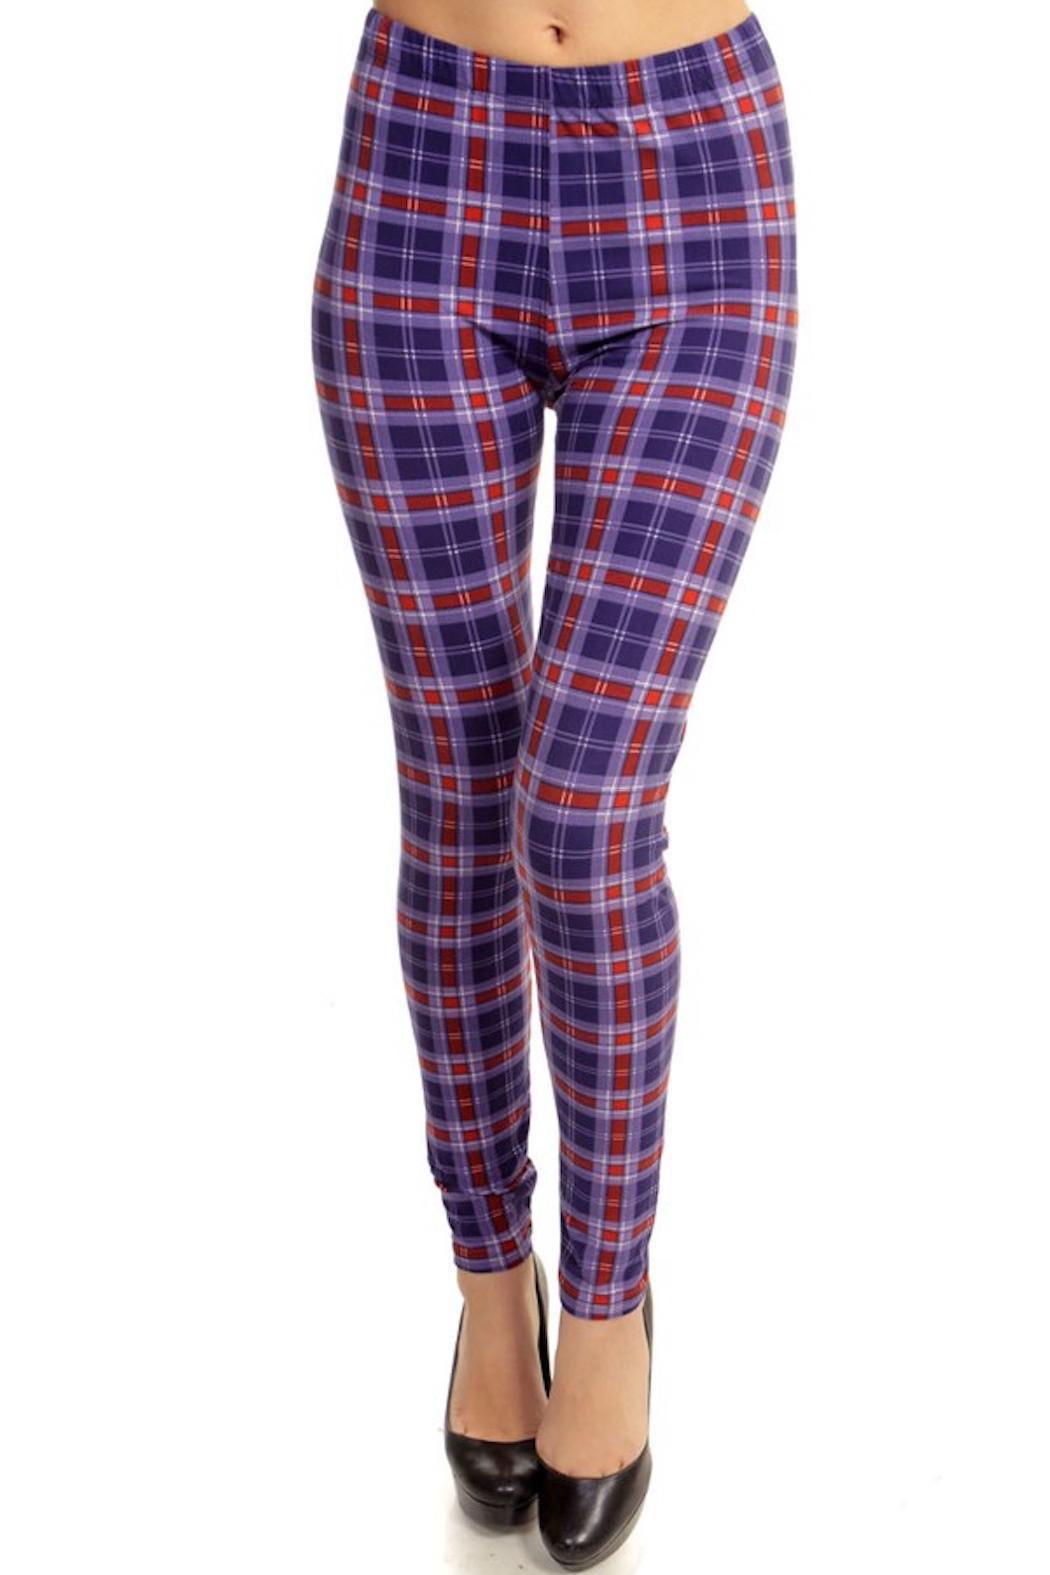 Fancy Fans Plaid Print Legging From Pennsylvania By Empire